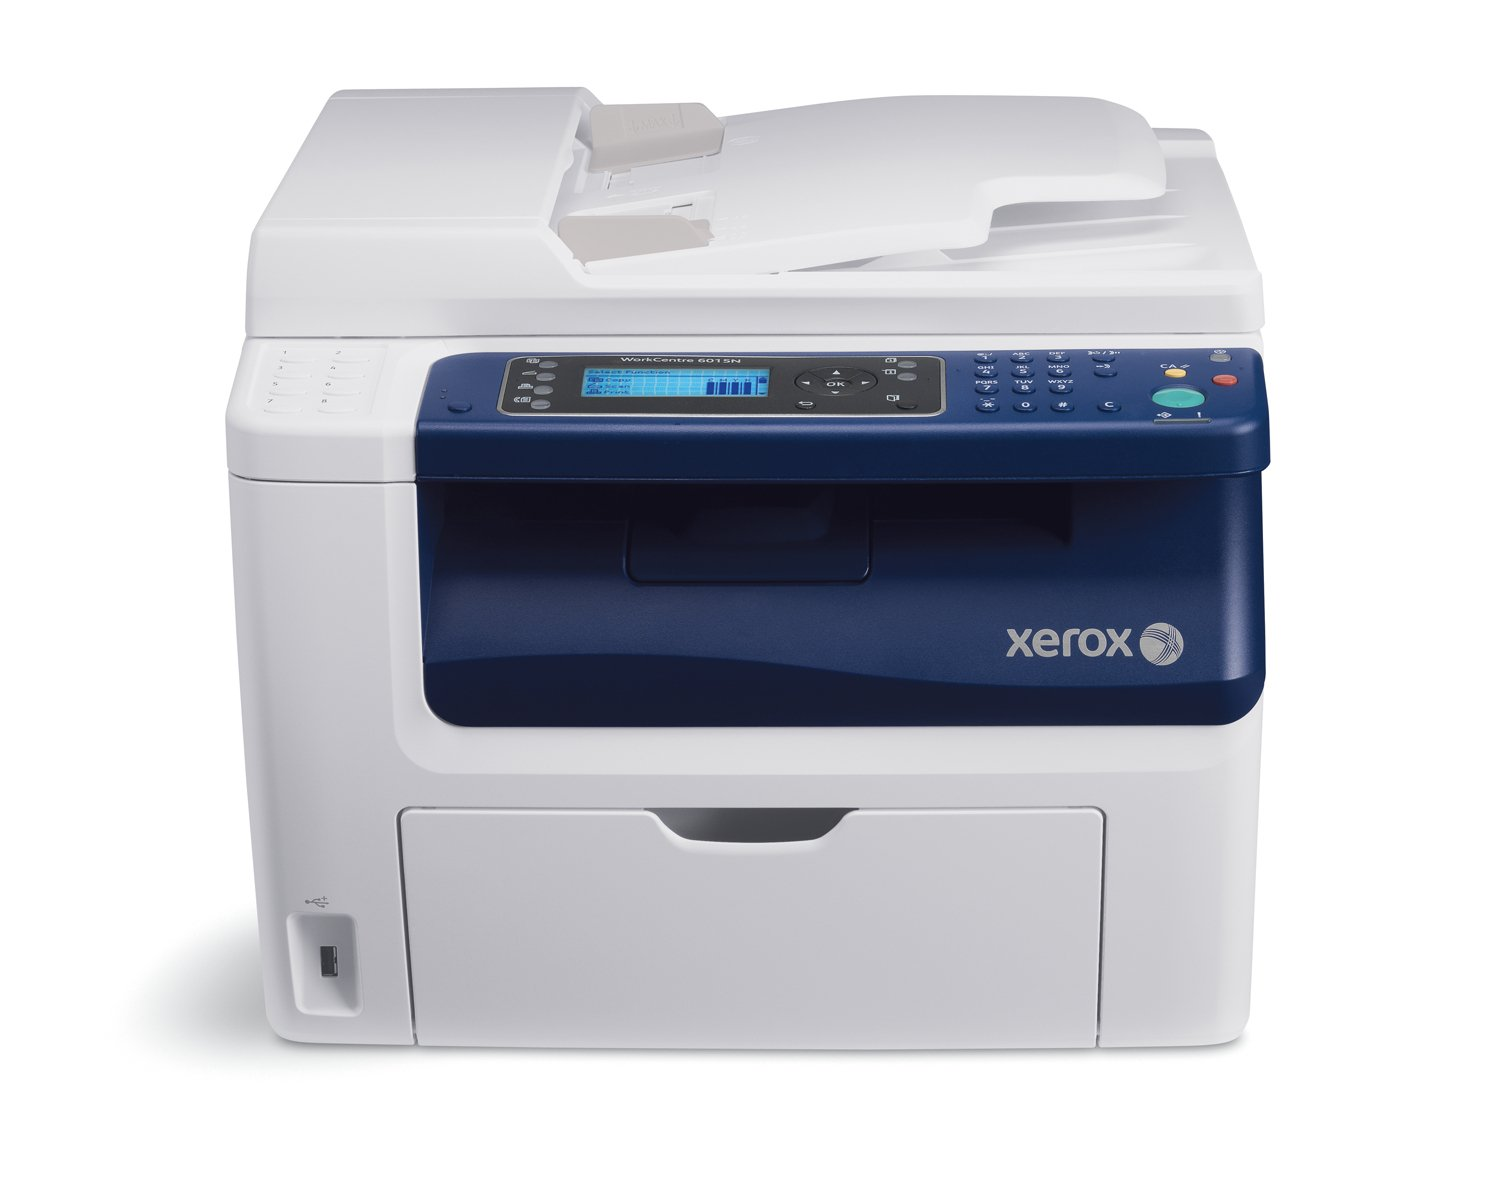 Amazon.com: Workcentre 6015/NI Color Multi-function Printer,  Print/copy/scan/fax, Up To 12/1 - Discontinued by manufacturer: Electronics